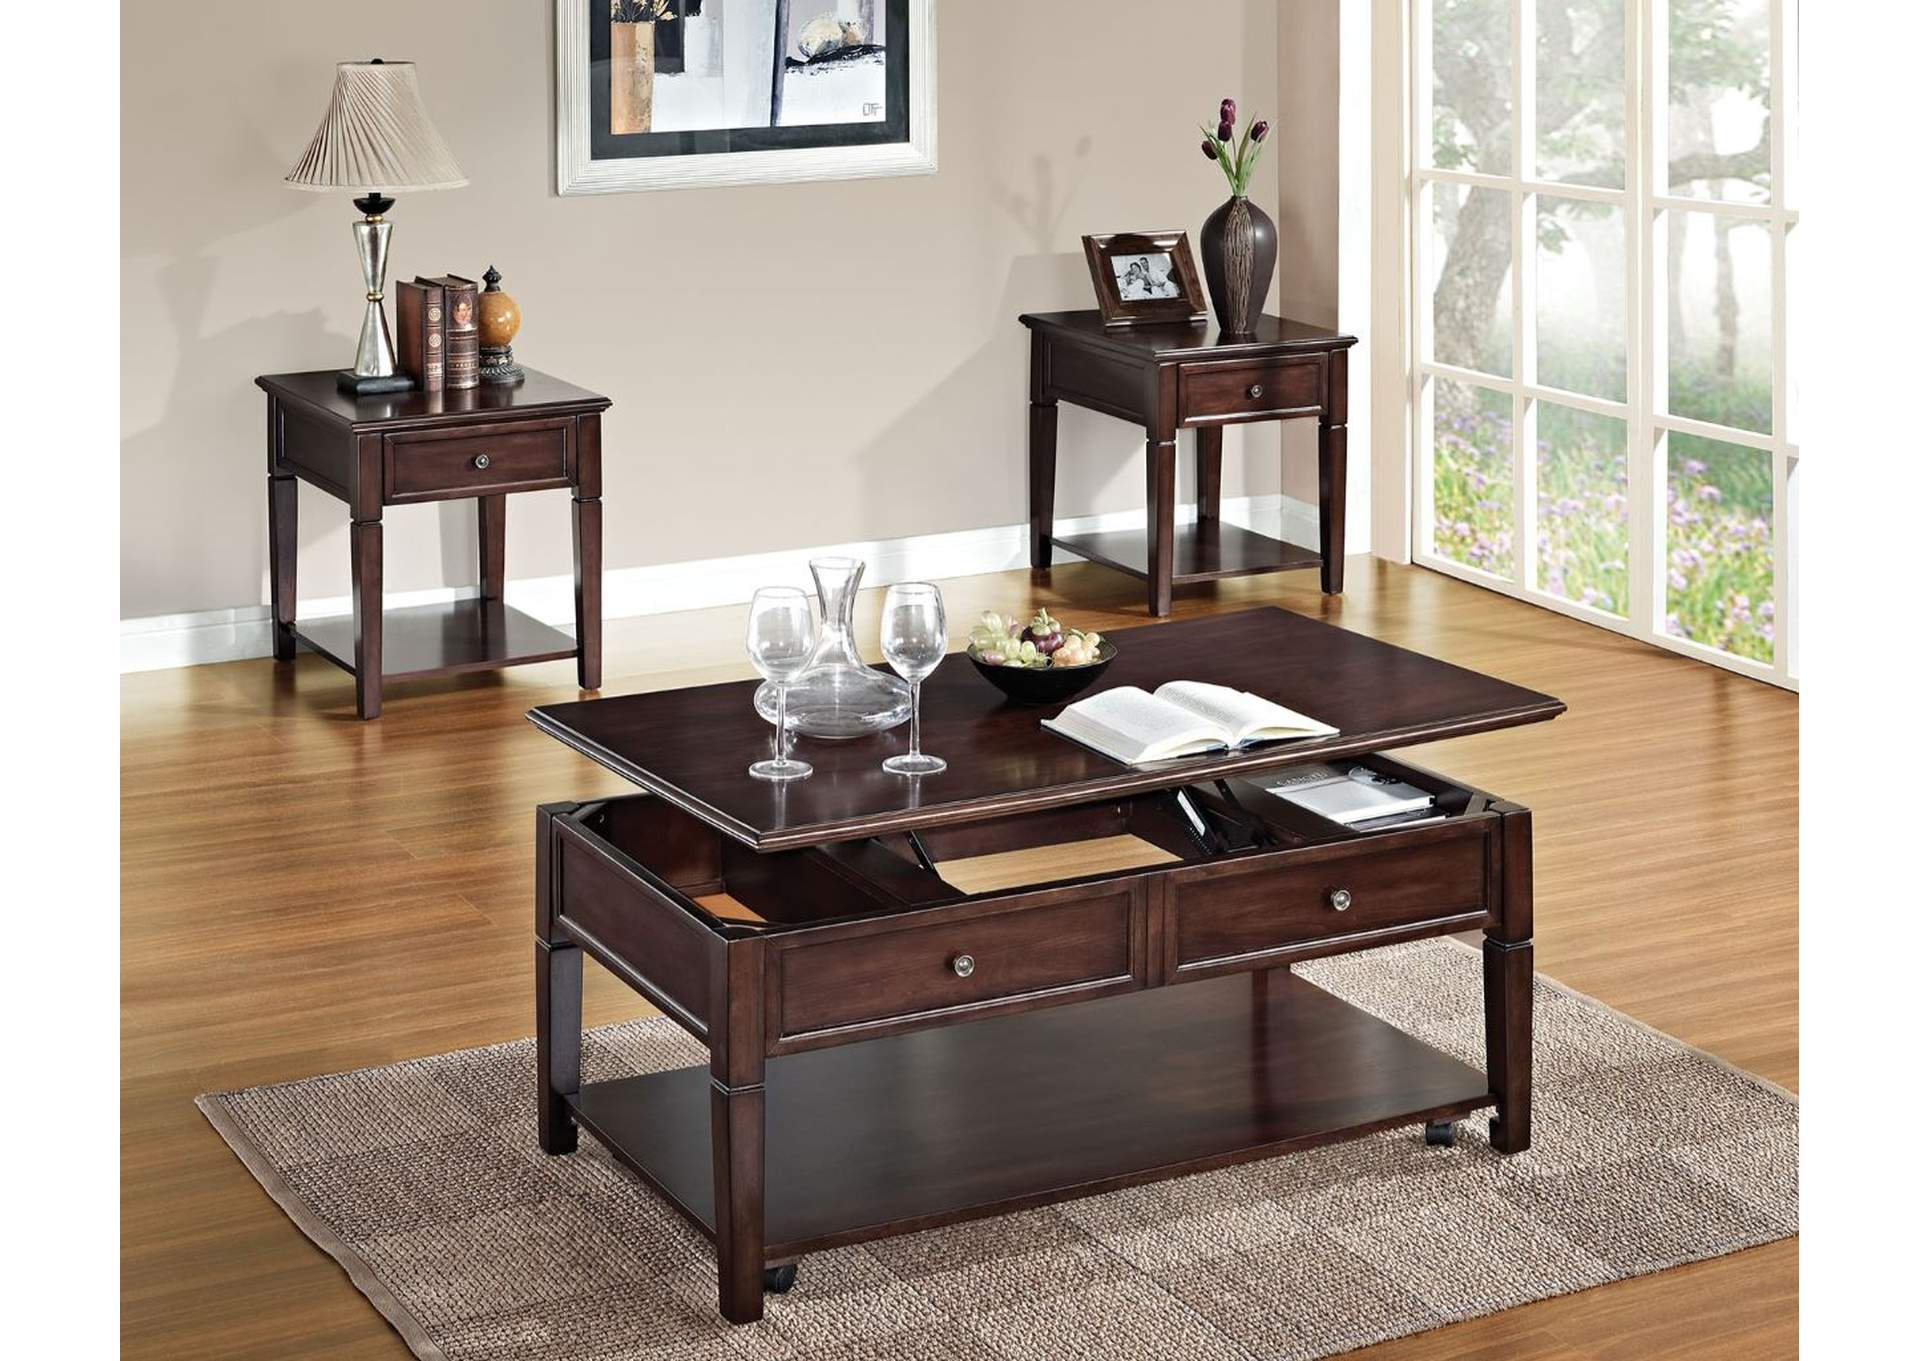 Malachi Walnut Coffee Table,Acme